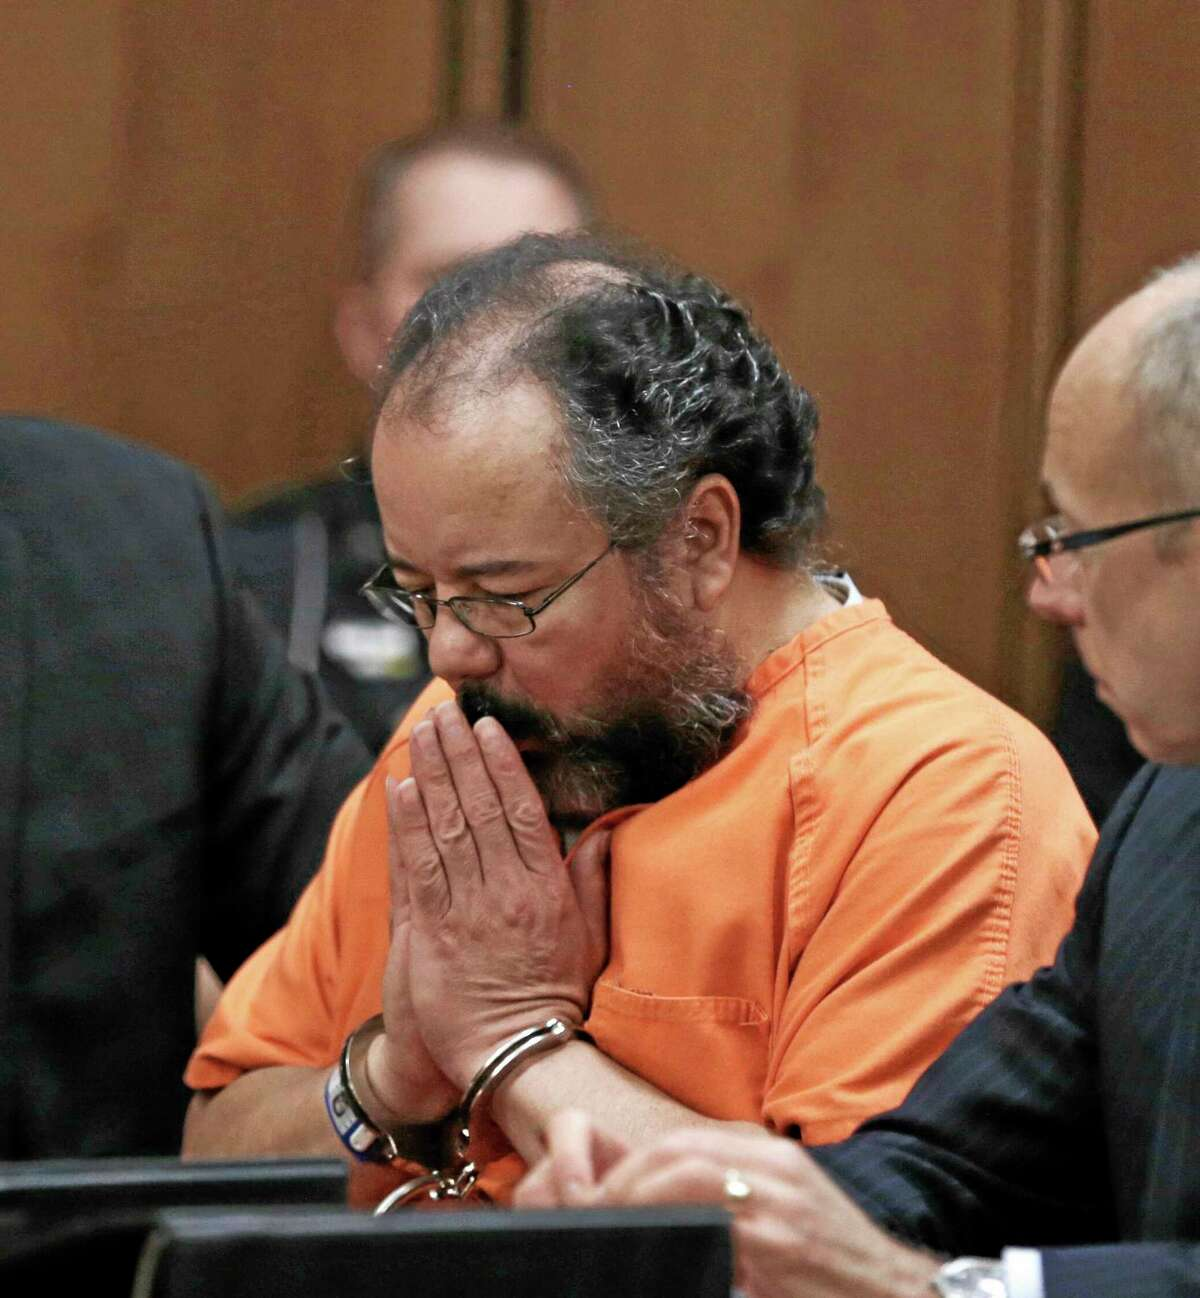 This Aug. 1, 2013 file photo shows Ariel Castro in the courtroom during the sentencing phase in Cleveland. AP Photo/Tony Dejak